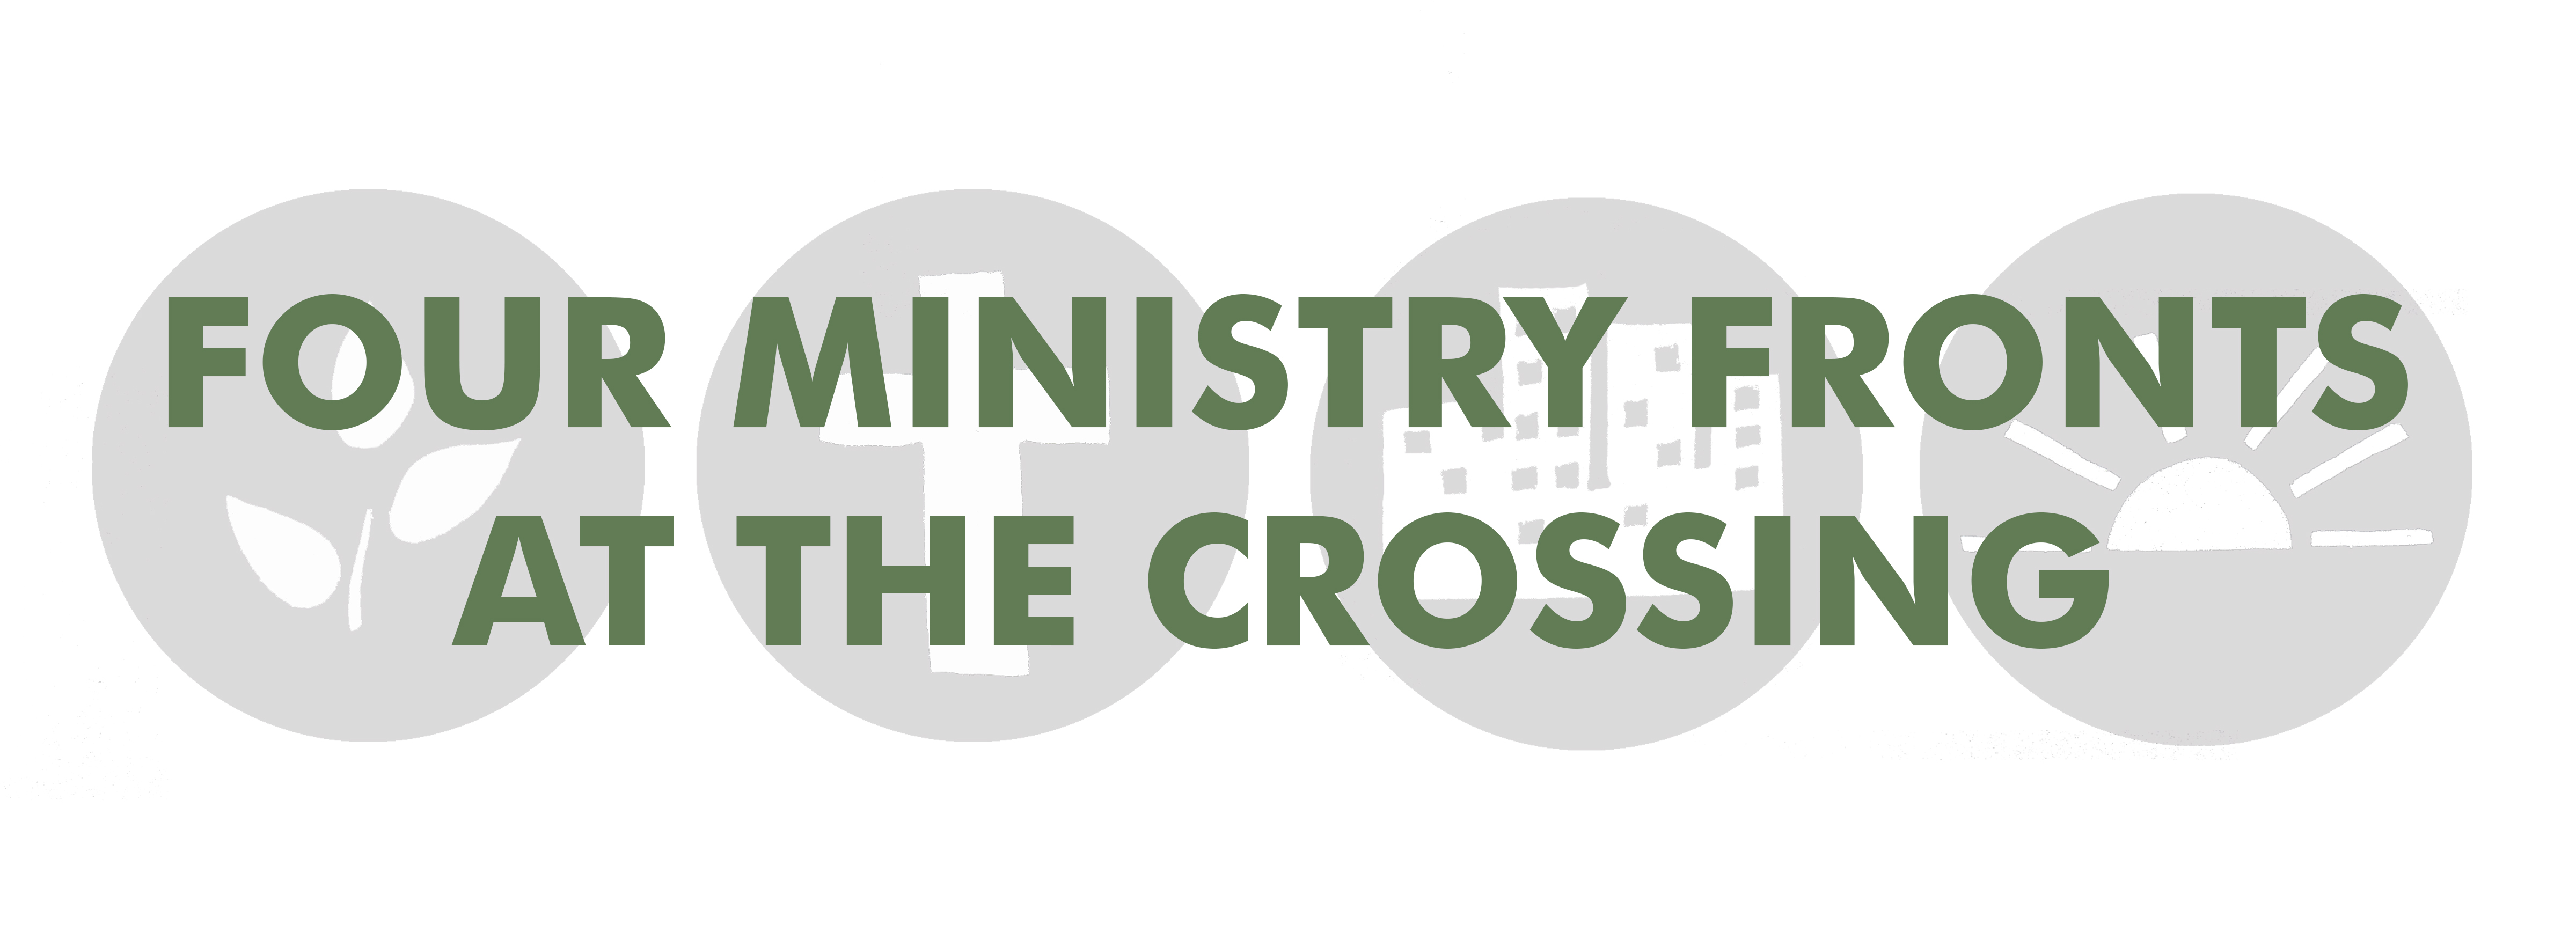 Four Ministry Fronts at The Crossing